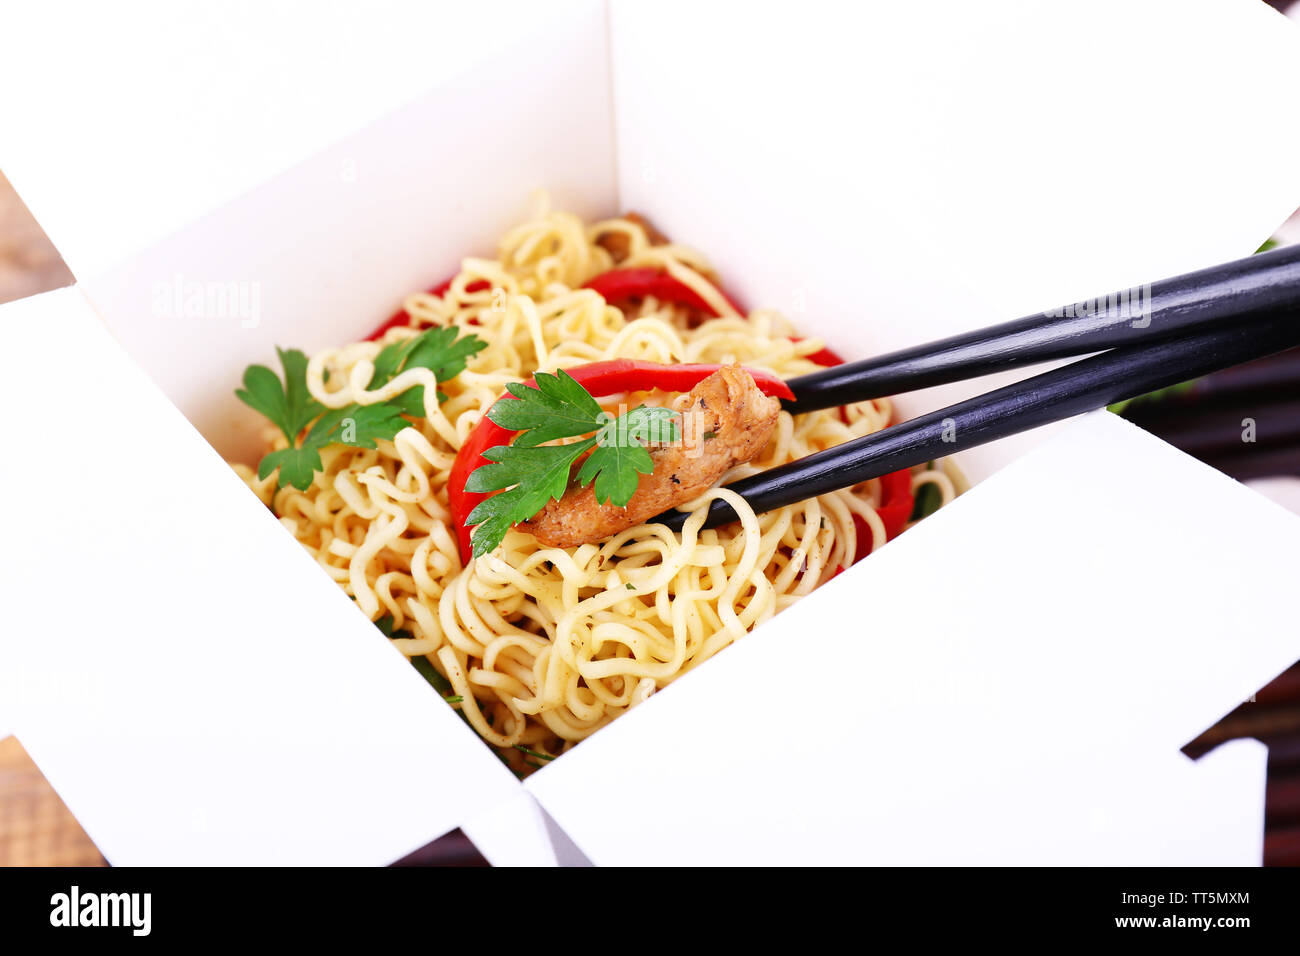 Chinese noodles in takeaway box closeup - Stock Image